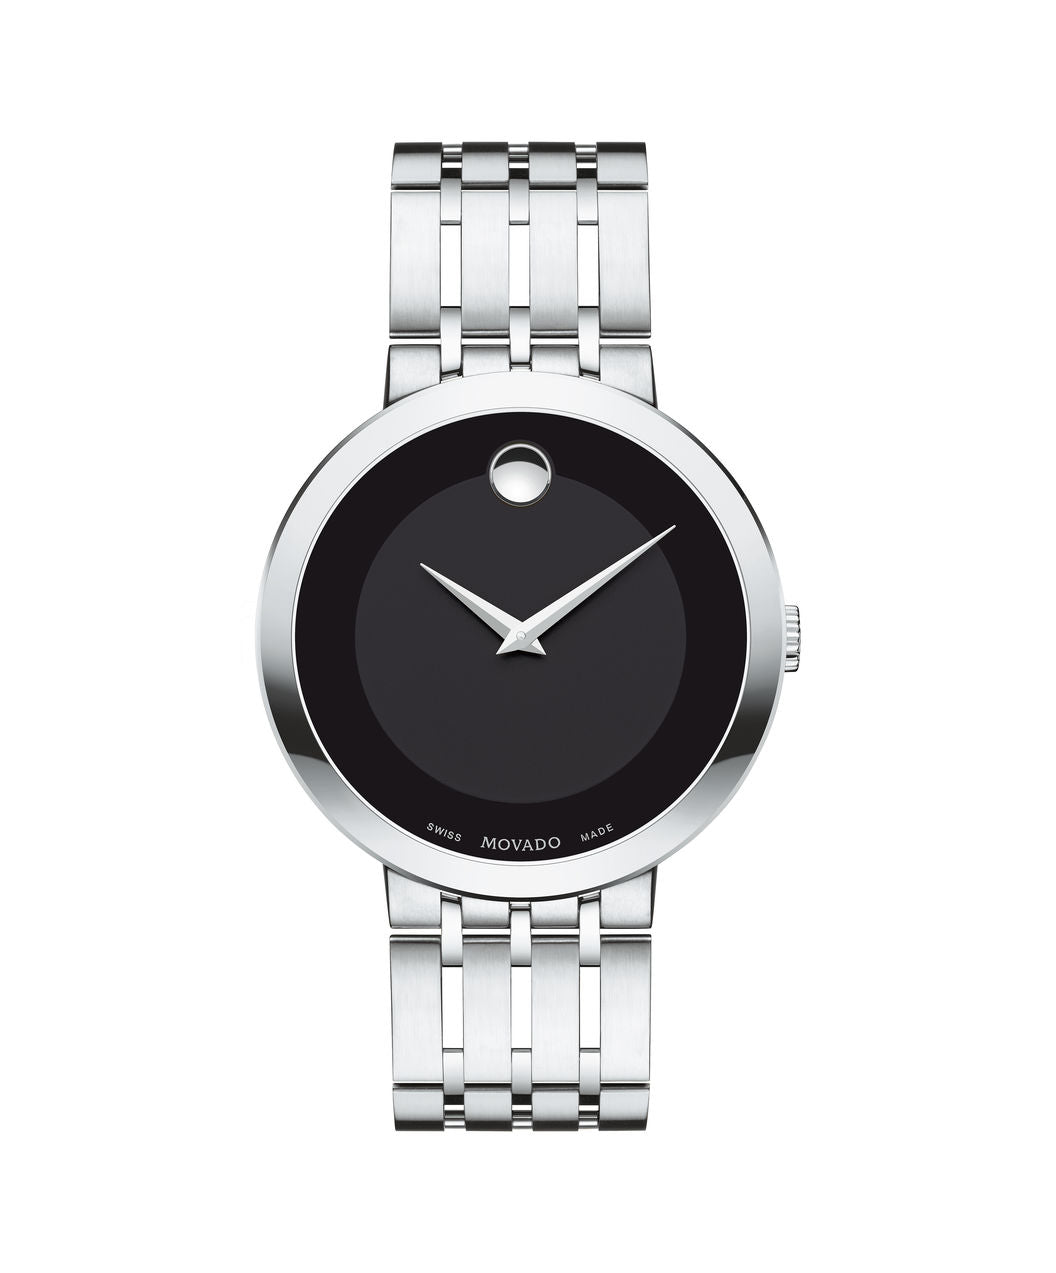 Movado Esperanza Men's Watch with Black Dial